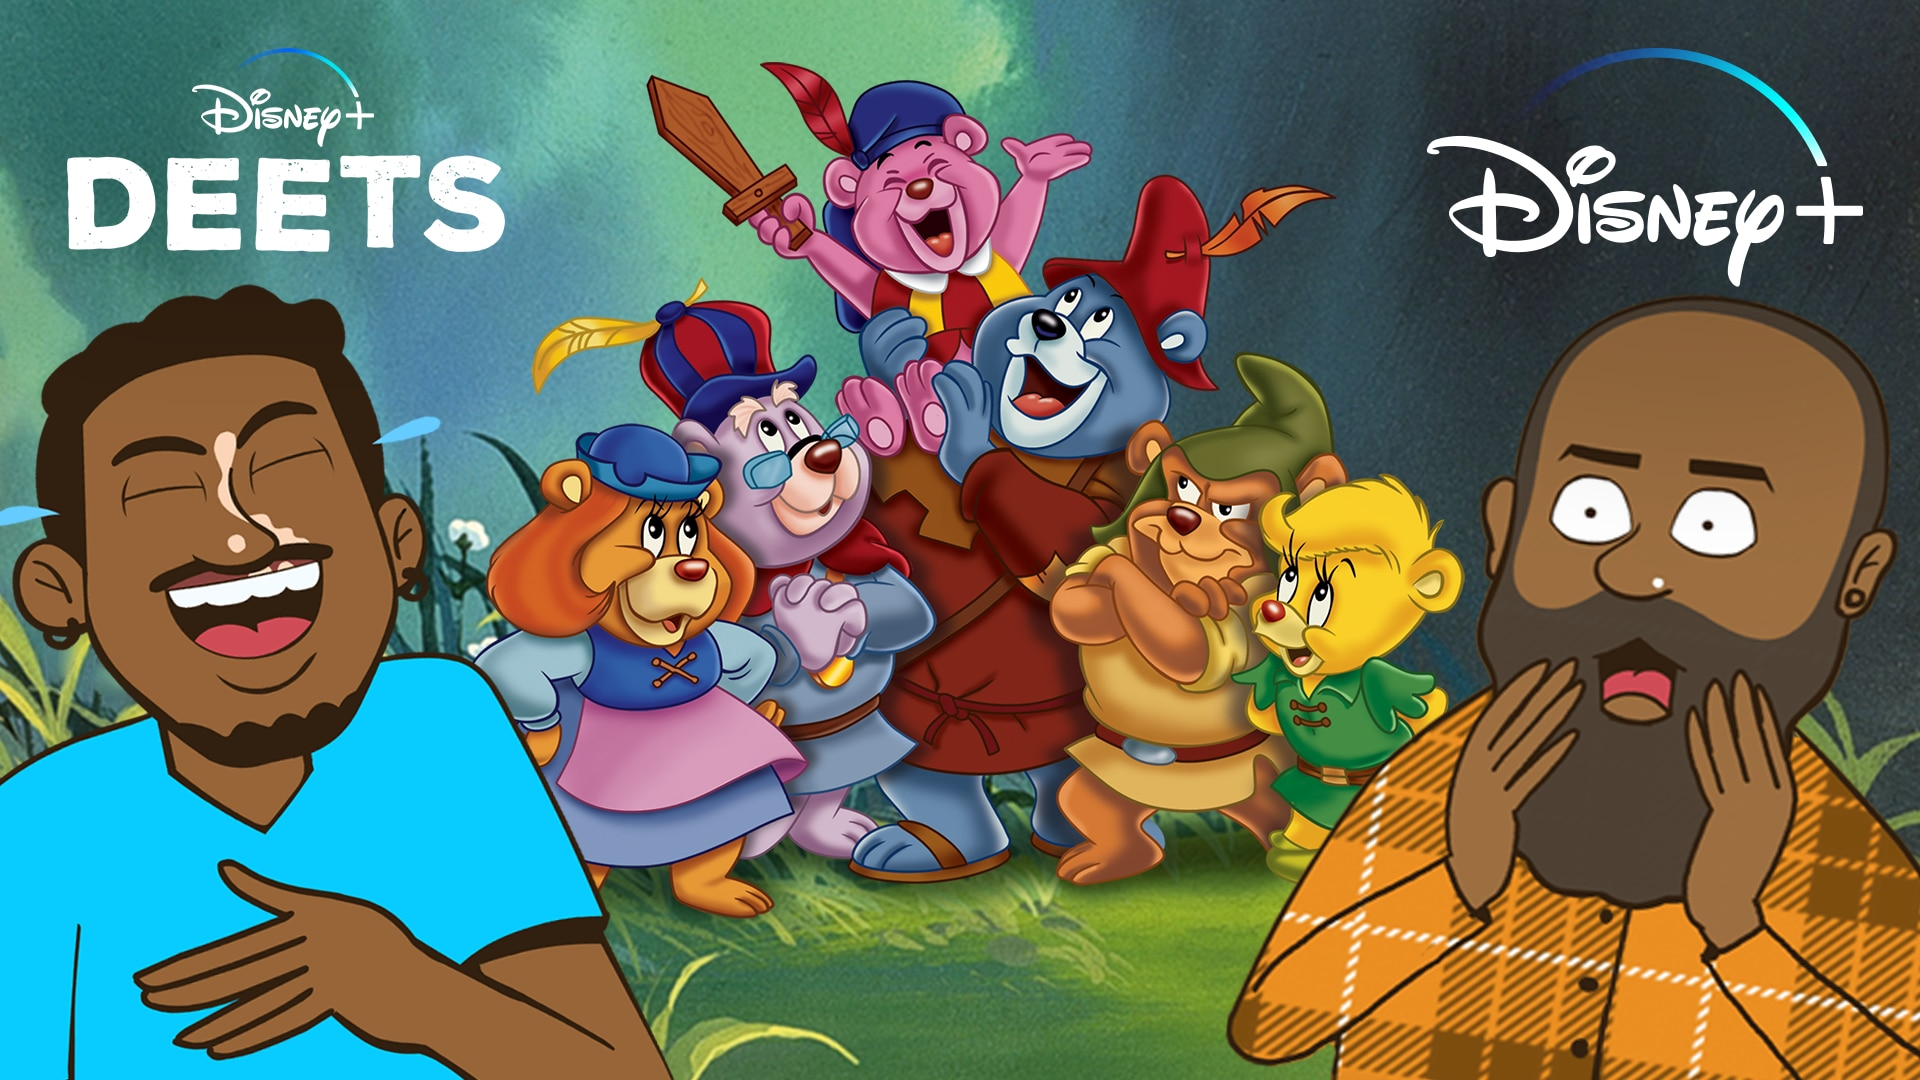 Disney's Adventures of the Gummi Bears | All the Facts | Disney+ Deets